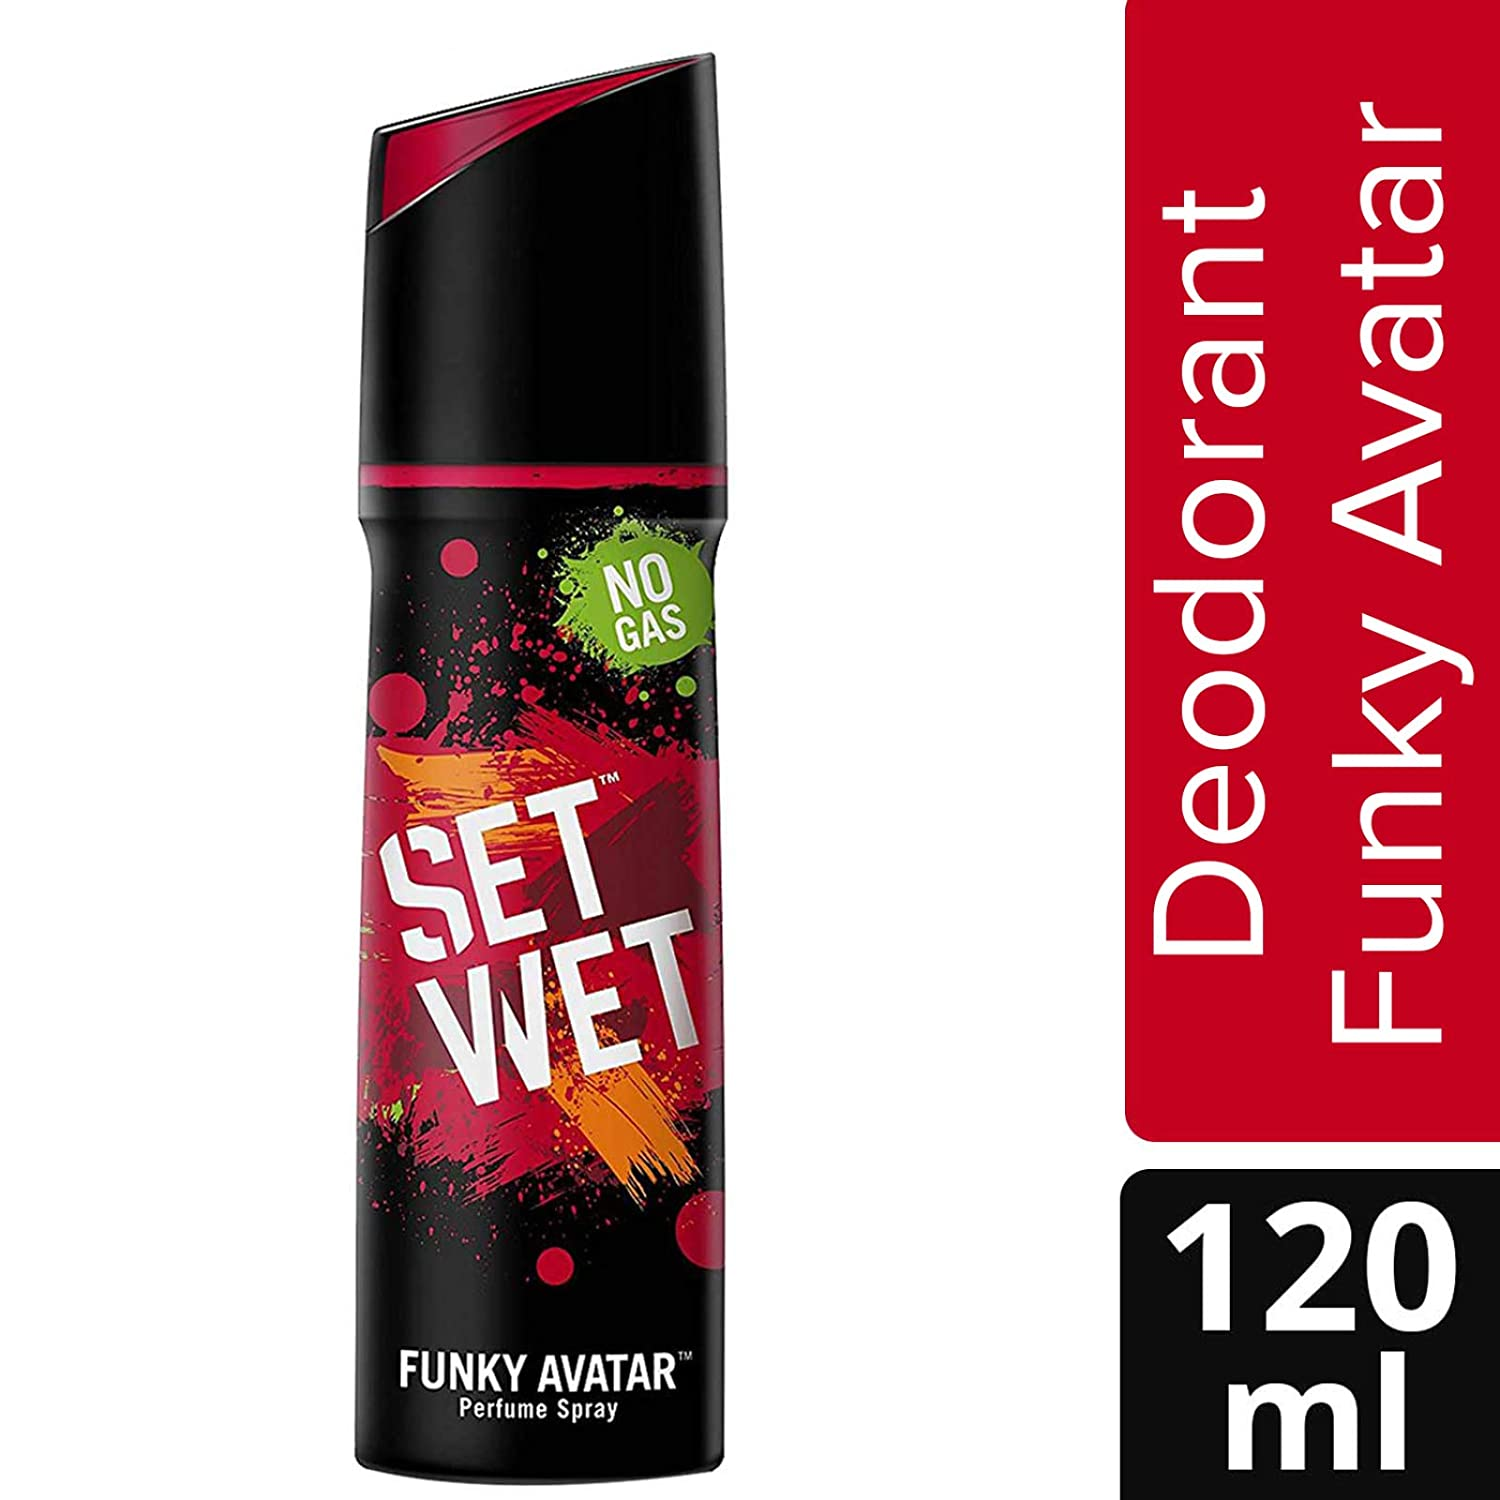 1a92f372f9 Buy Set Wet Funky Avatar No Gas Deodorant, 120 ml Online at Low Prices in  India - Amazon.in